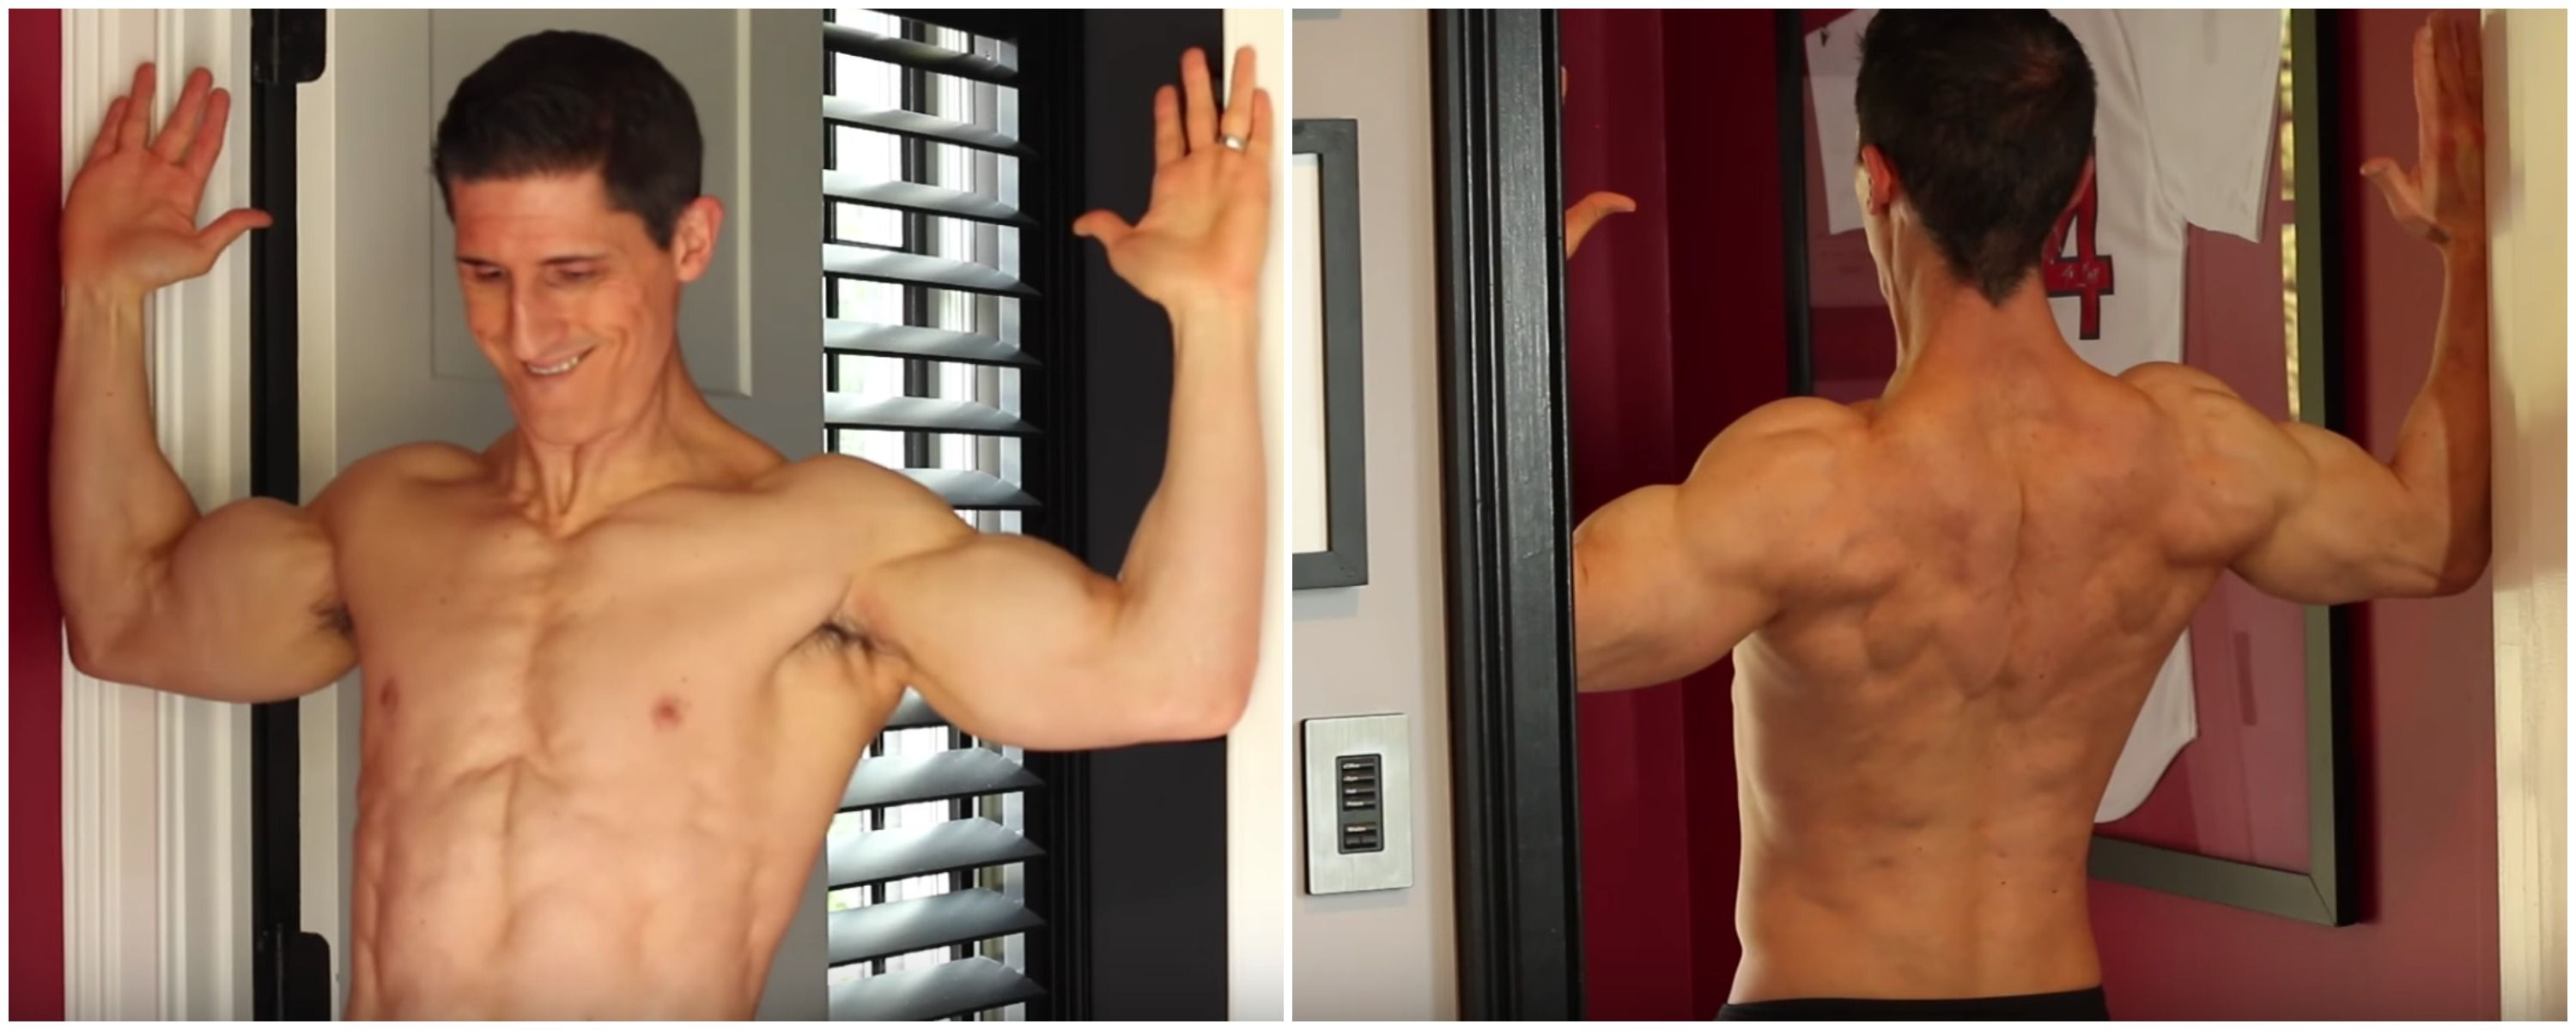 Here's How to Do One of the Absolute Best Back Workouts at Home